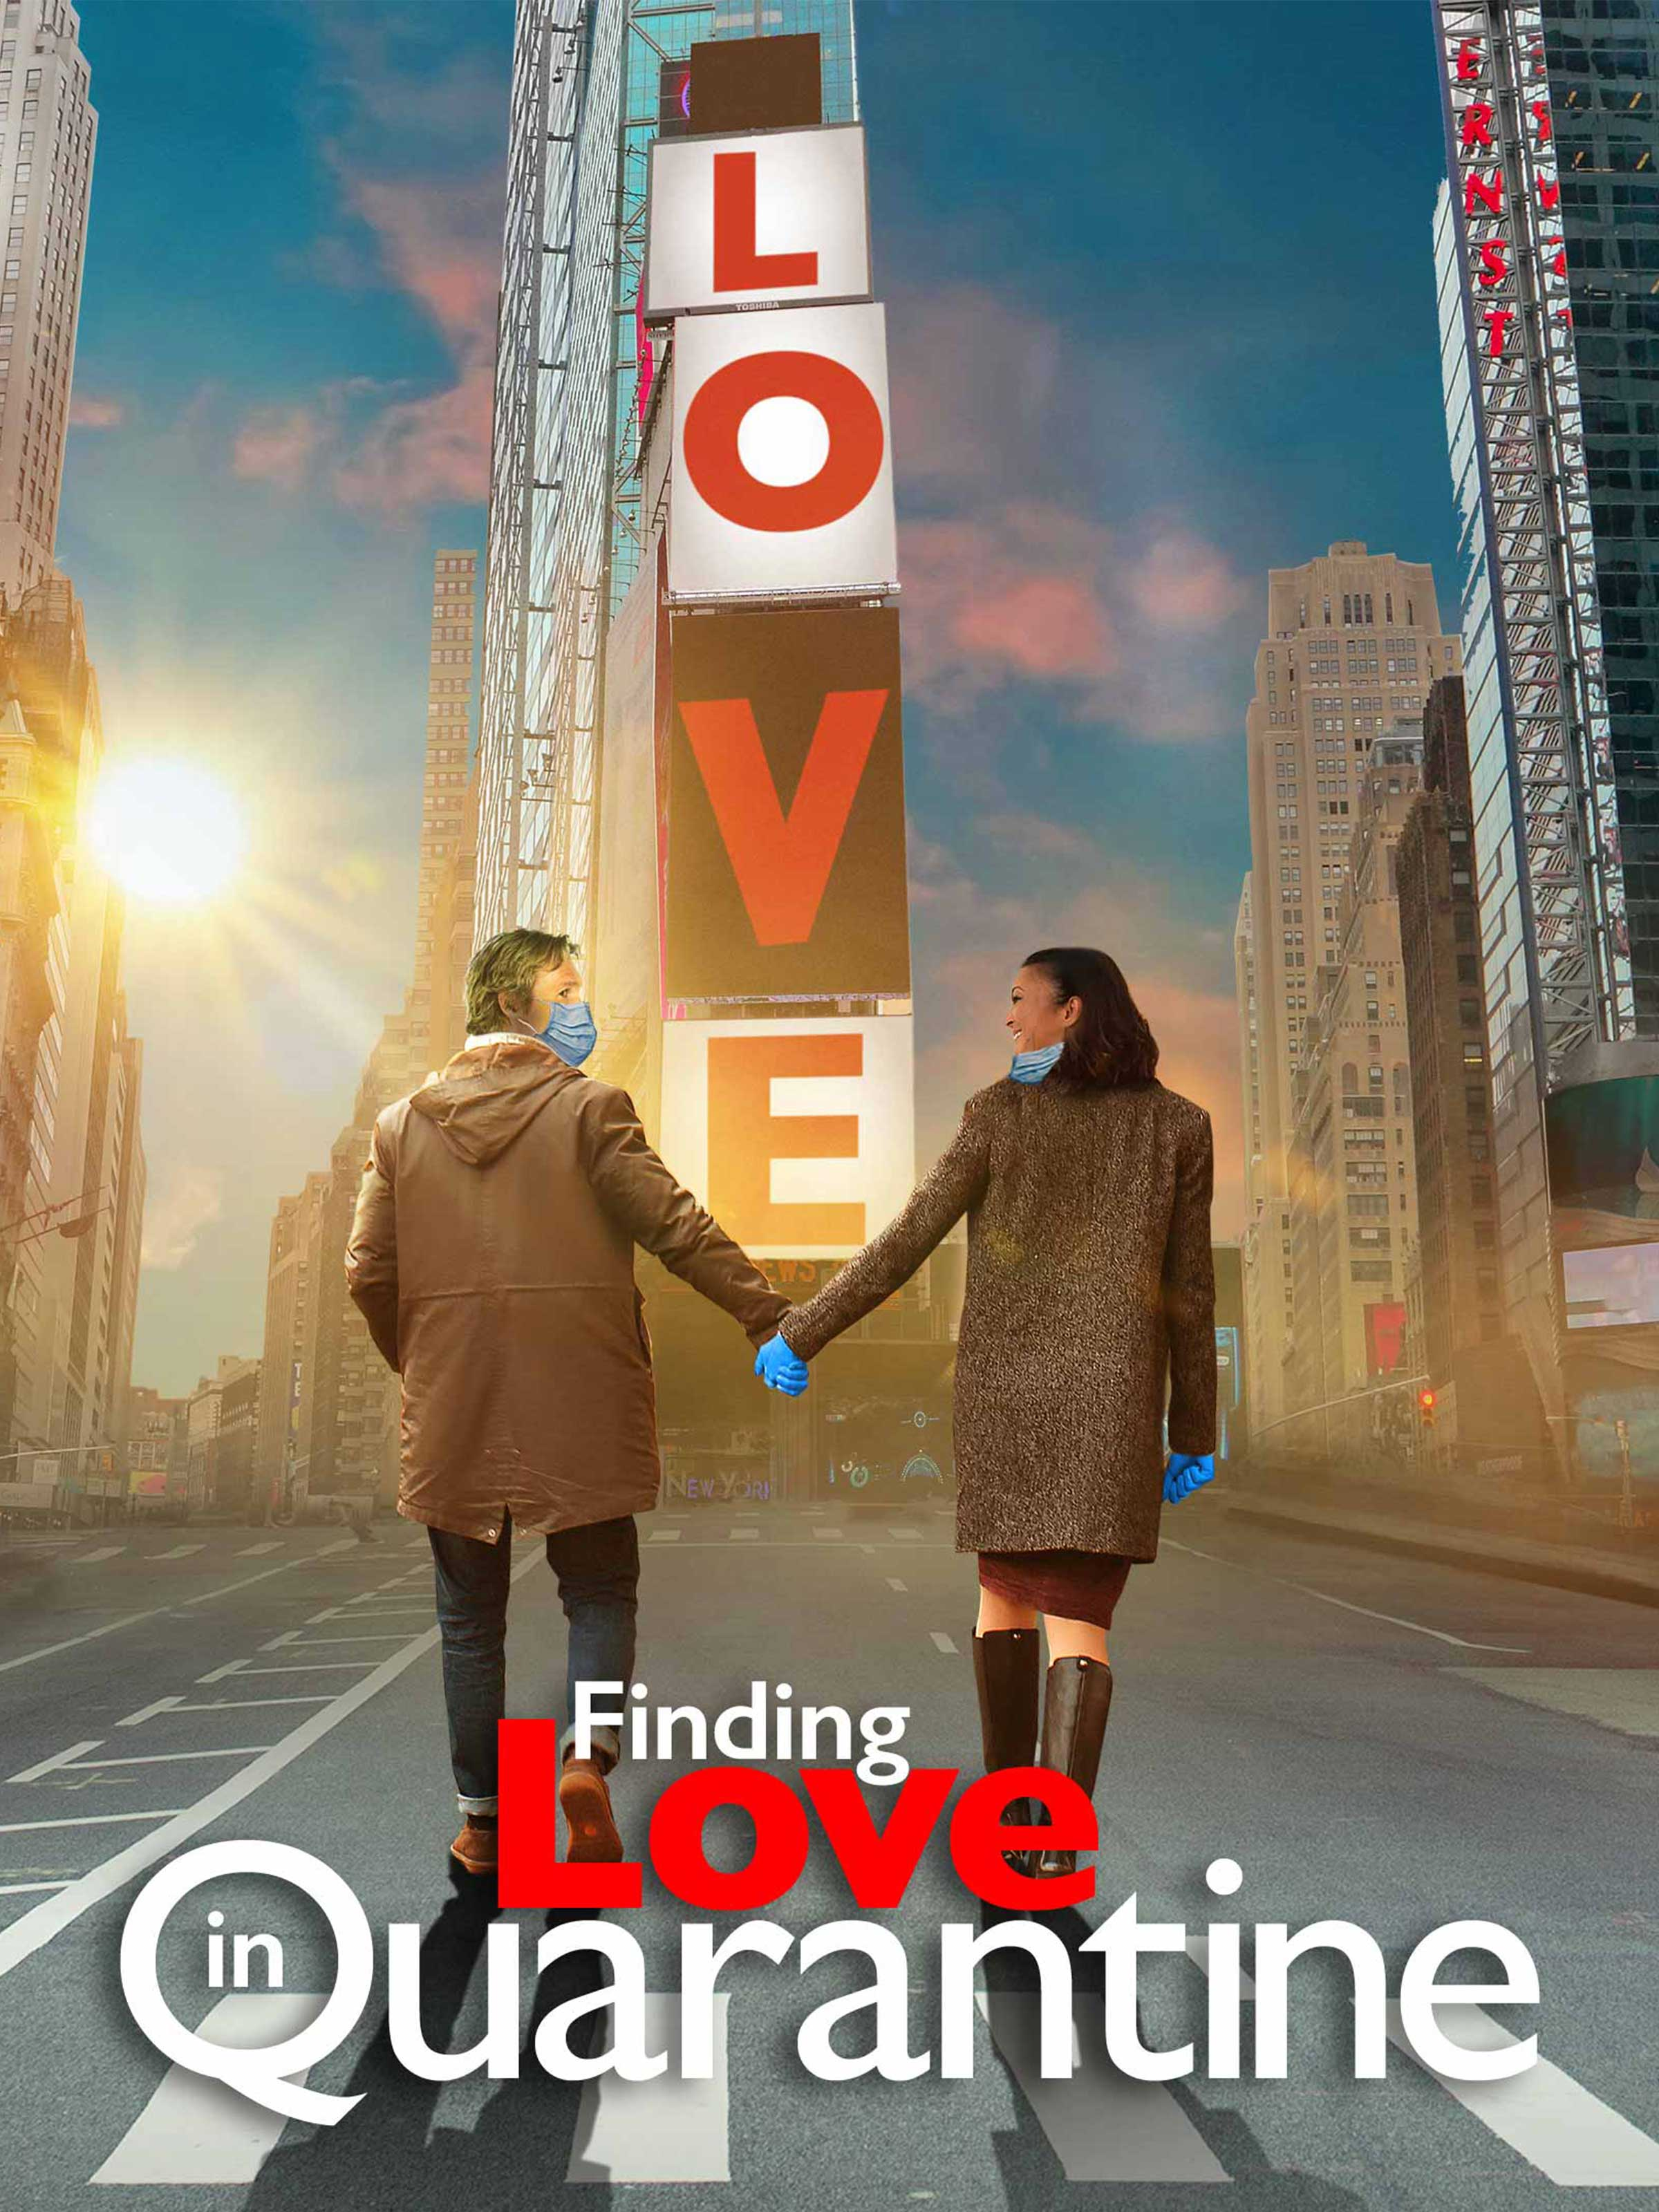 Finding Love in Quarantine 2021 English 480p HDRip 300MB Download